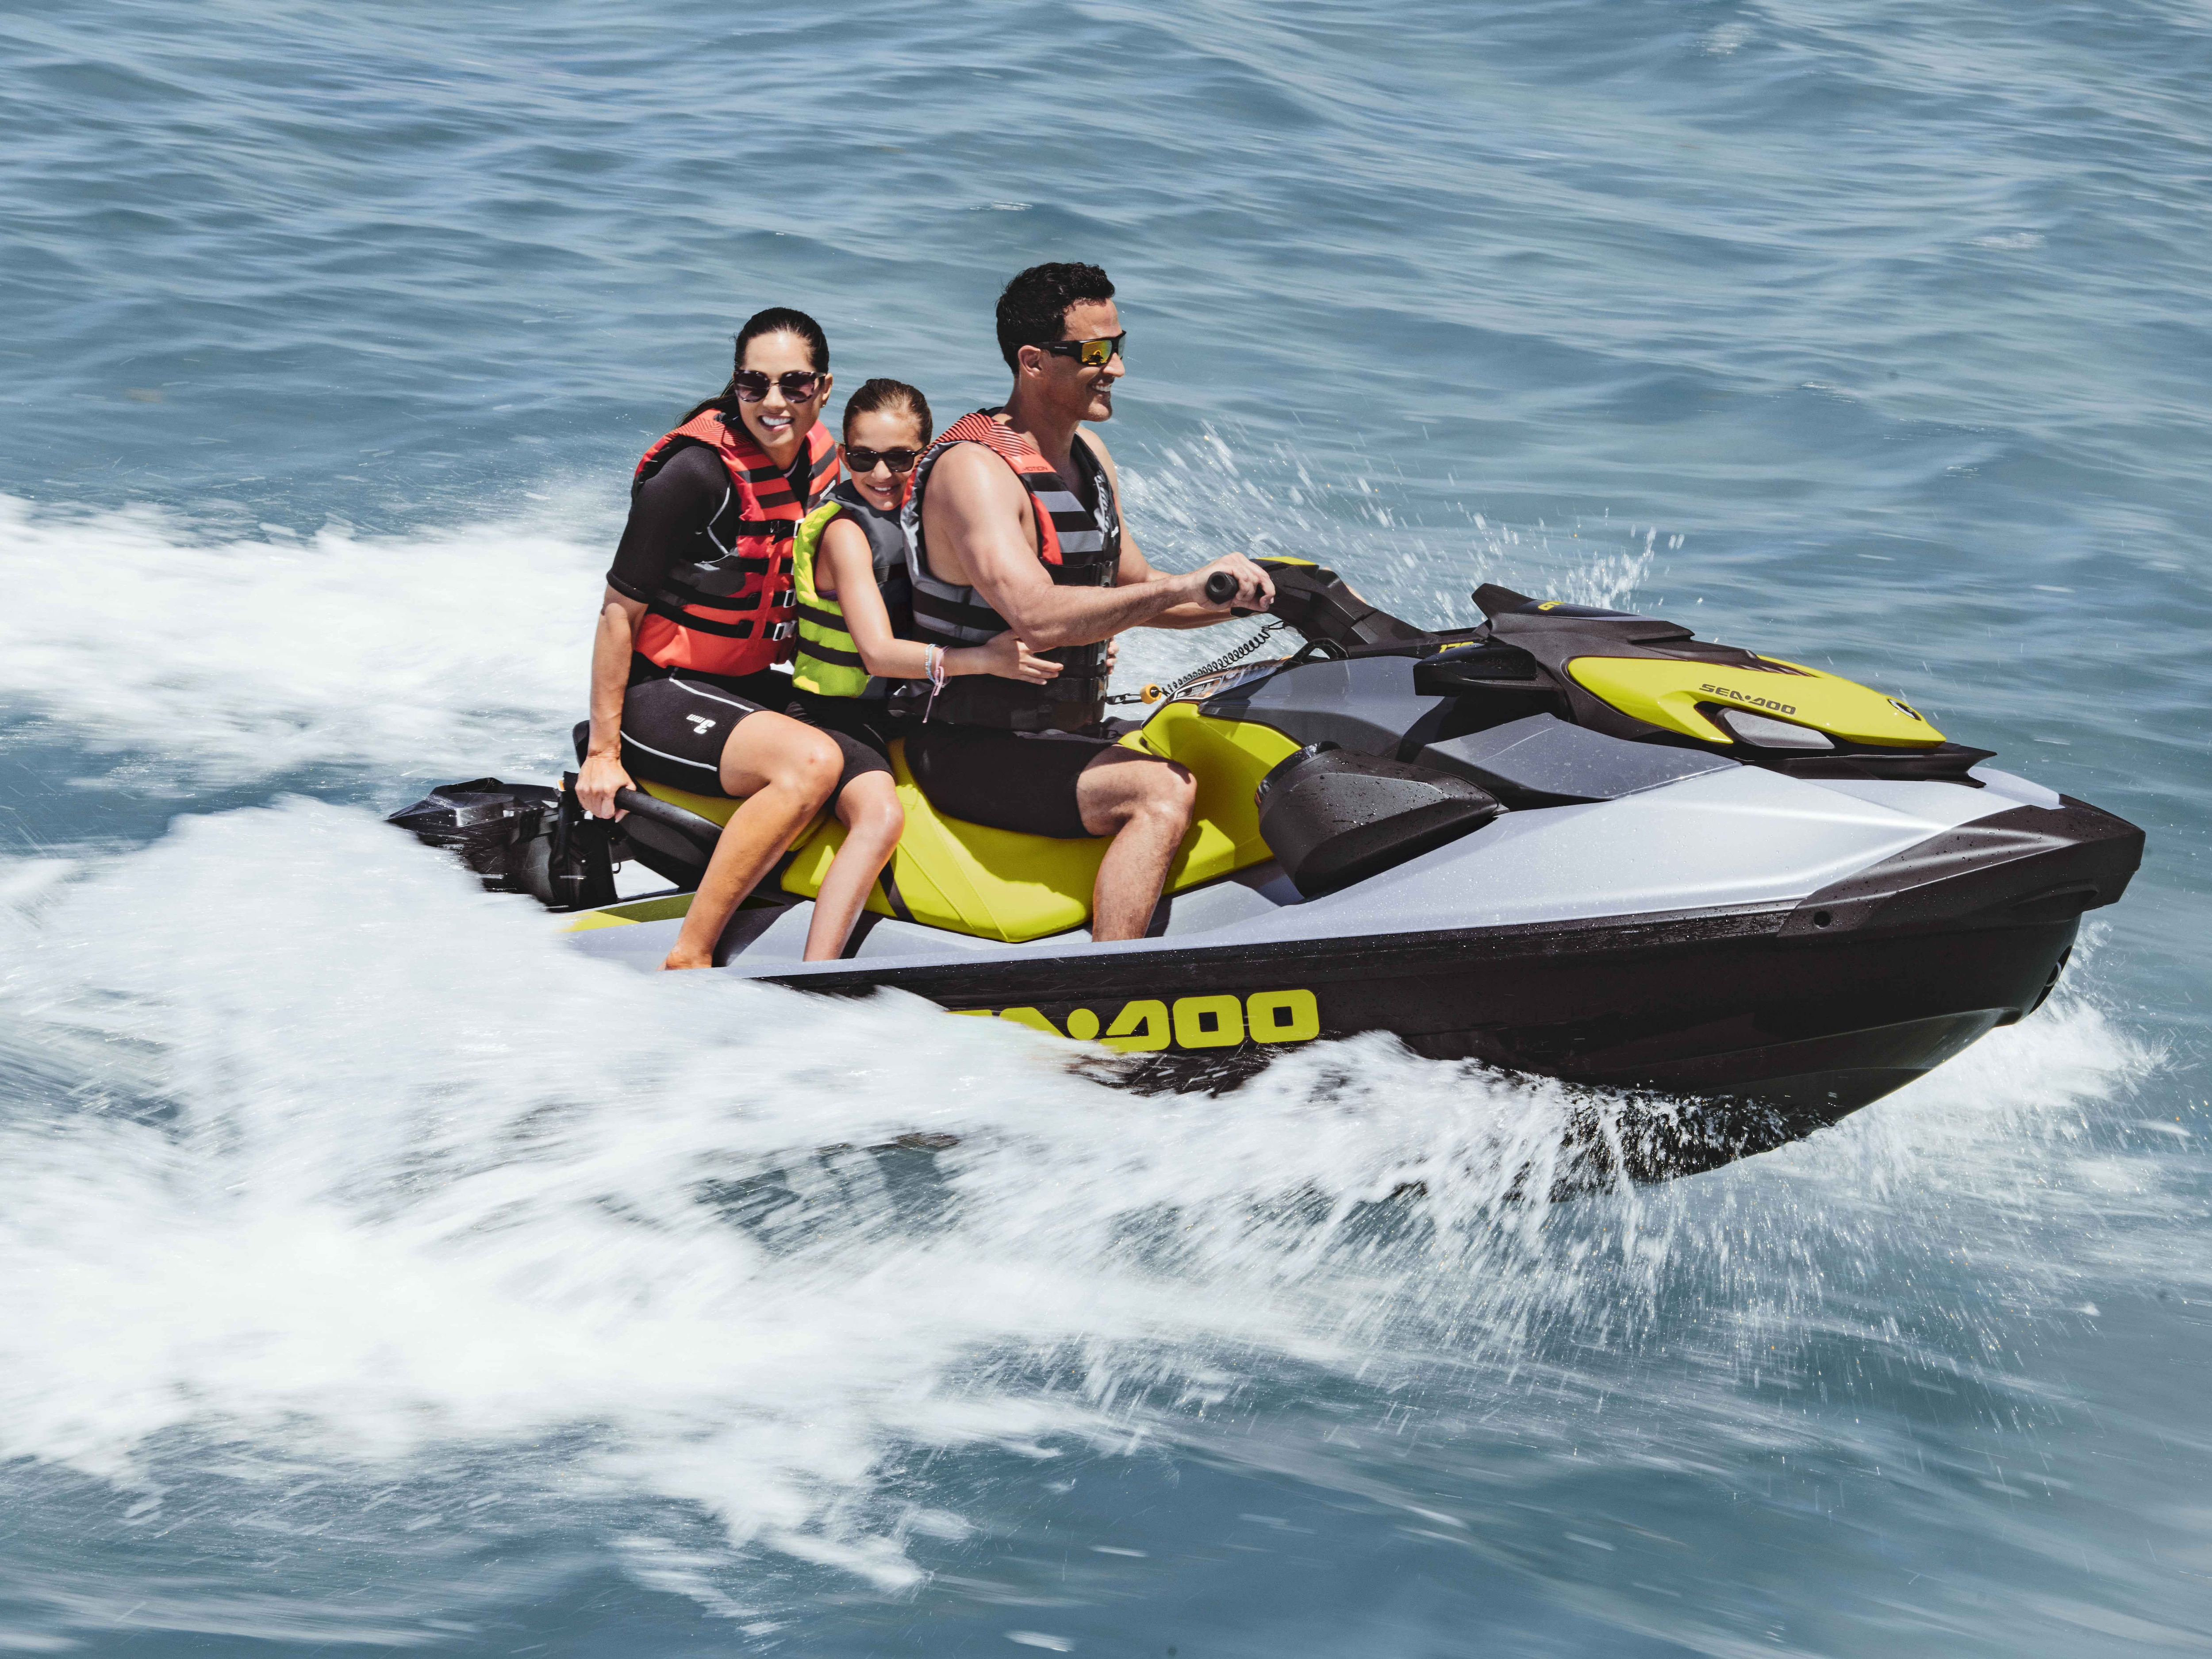 Family enjoying their ride on a Sea-Doo